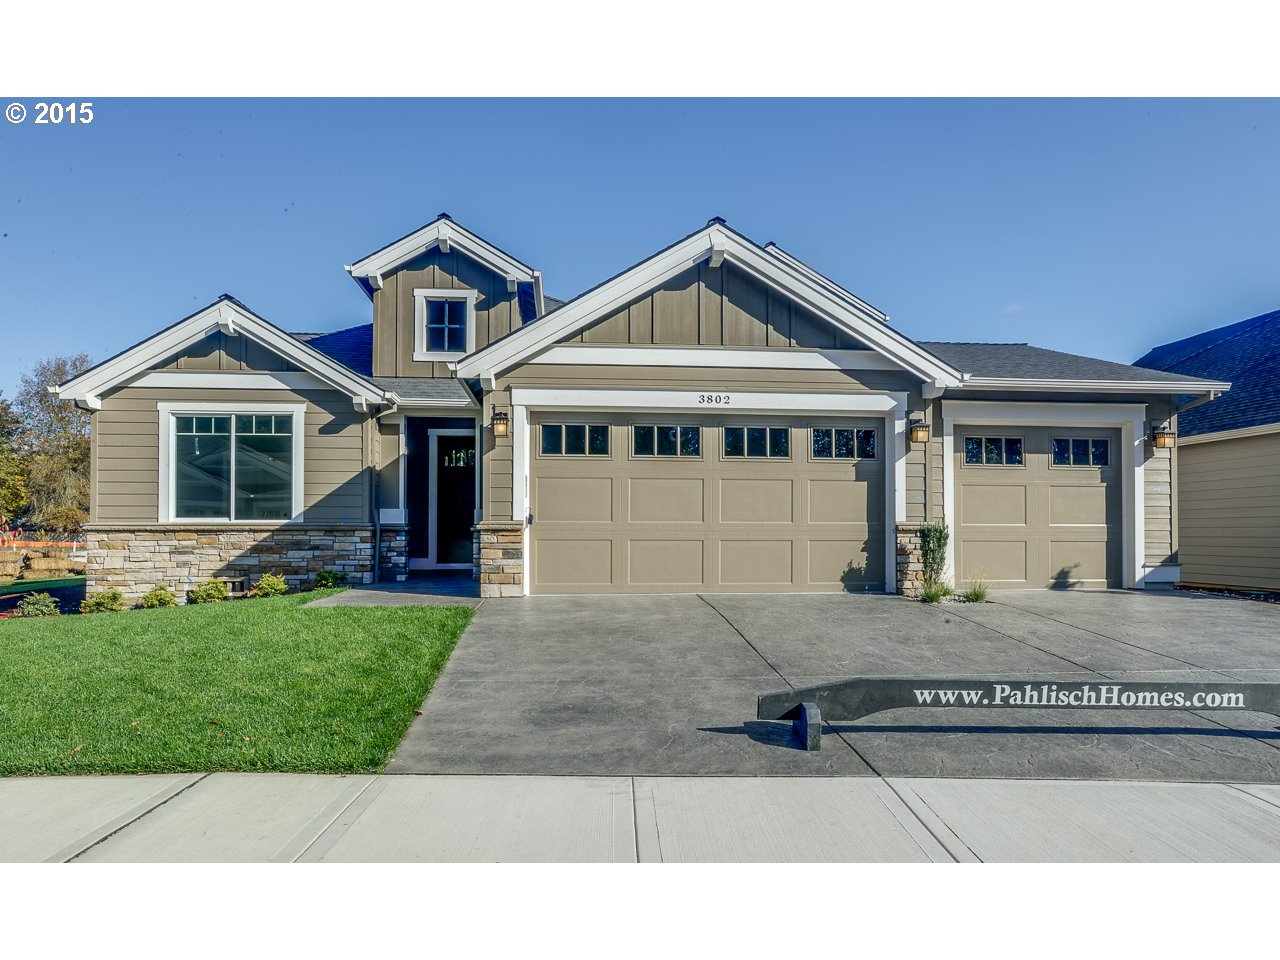 3802 SE Pipers Dr, Hillsboro, OR